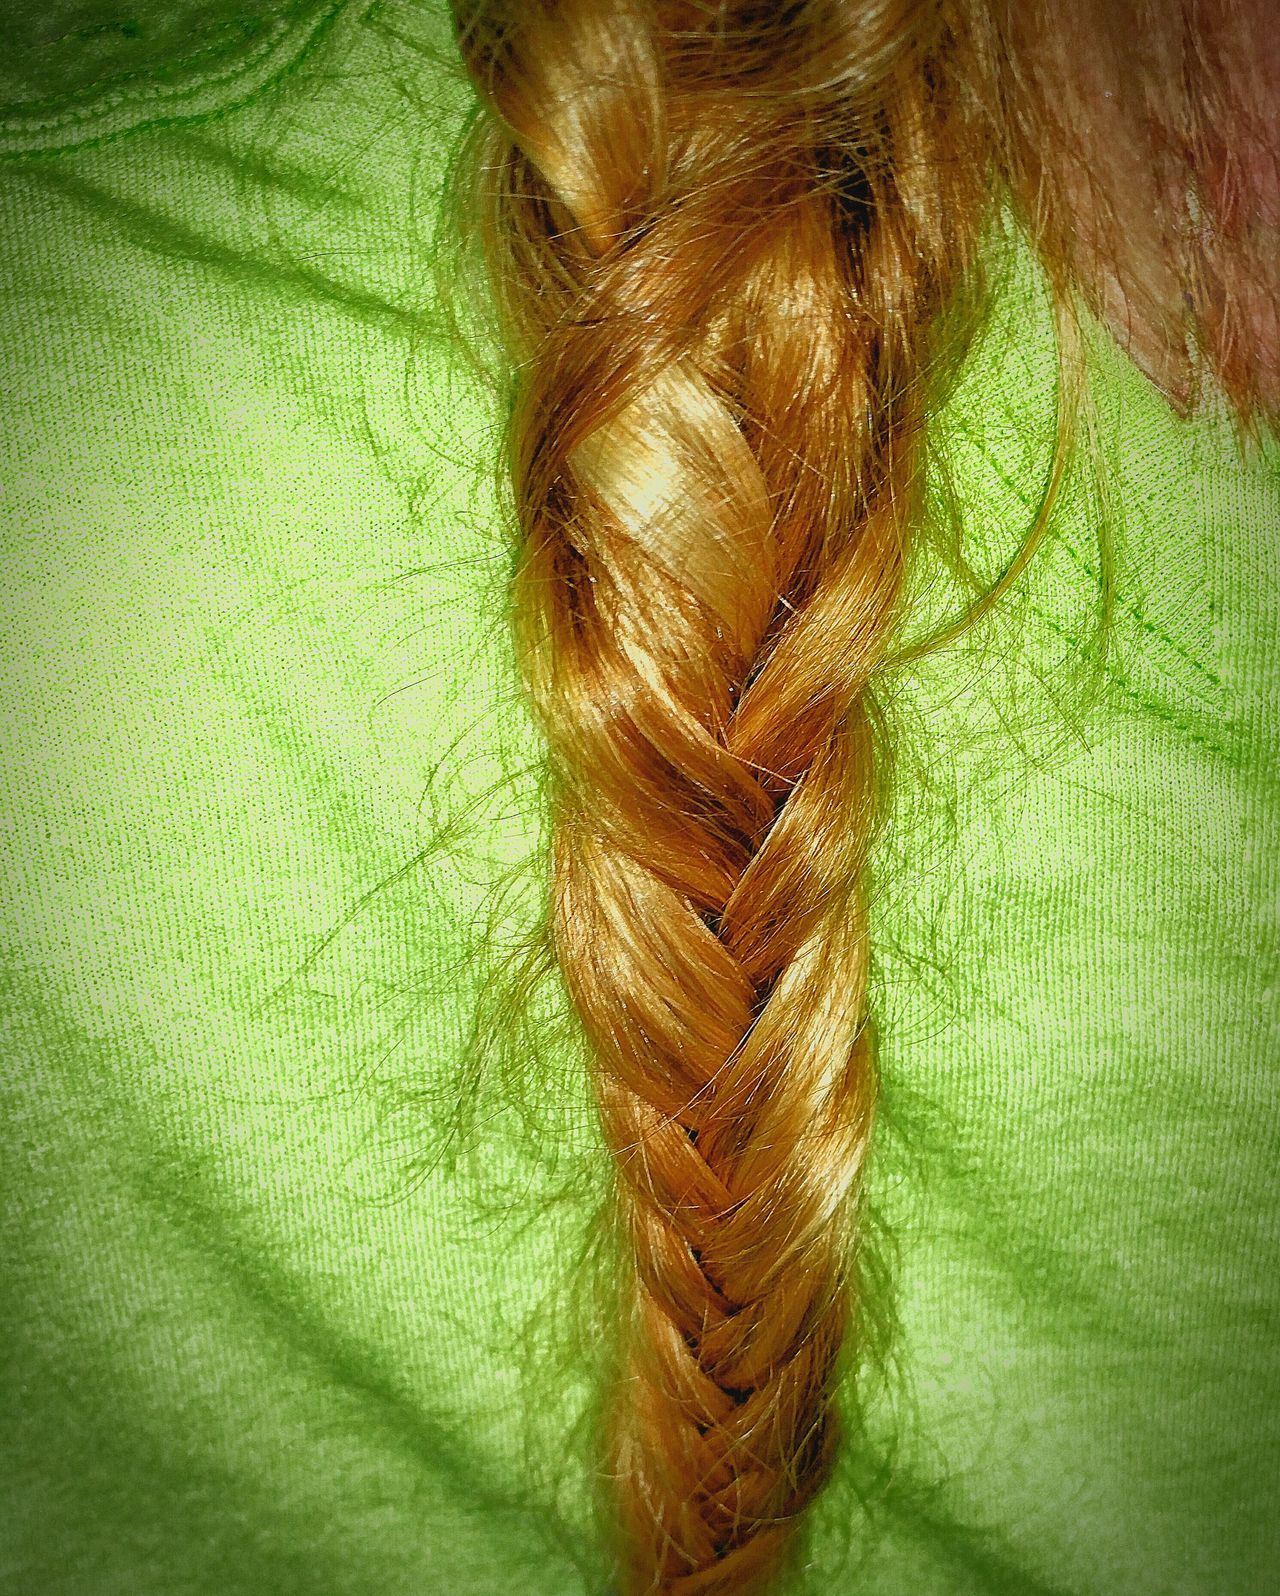 It's Me Hair Photography Hair Braid Fishtail Braid Bright Green Shirt Sun Kissed Hair My Hair Braided Hair Messy Hair Messy Hair Dont Care Messy Braid Showing Imperfection Let Your Hair Down